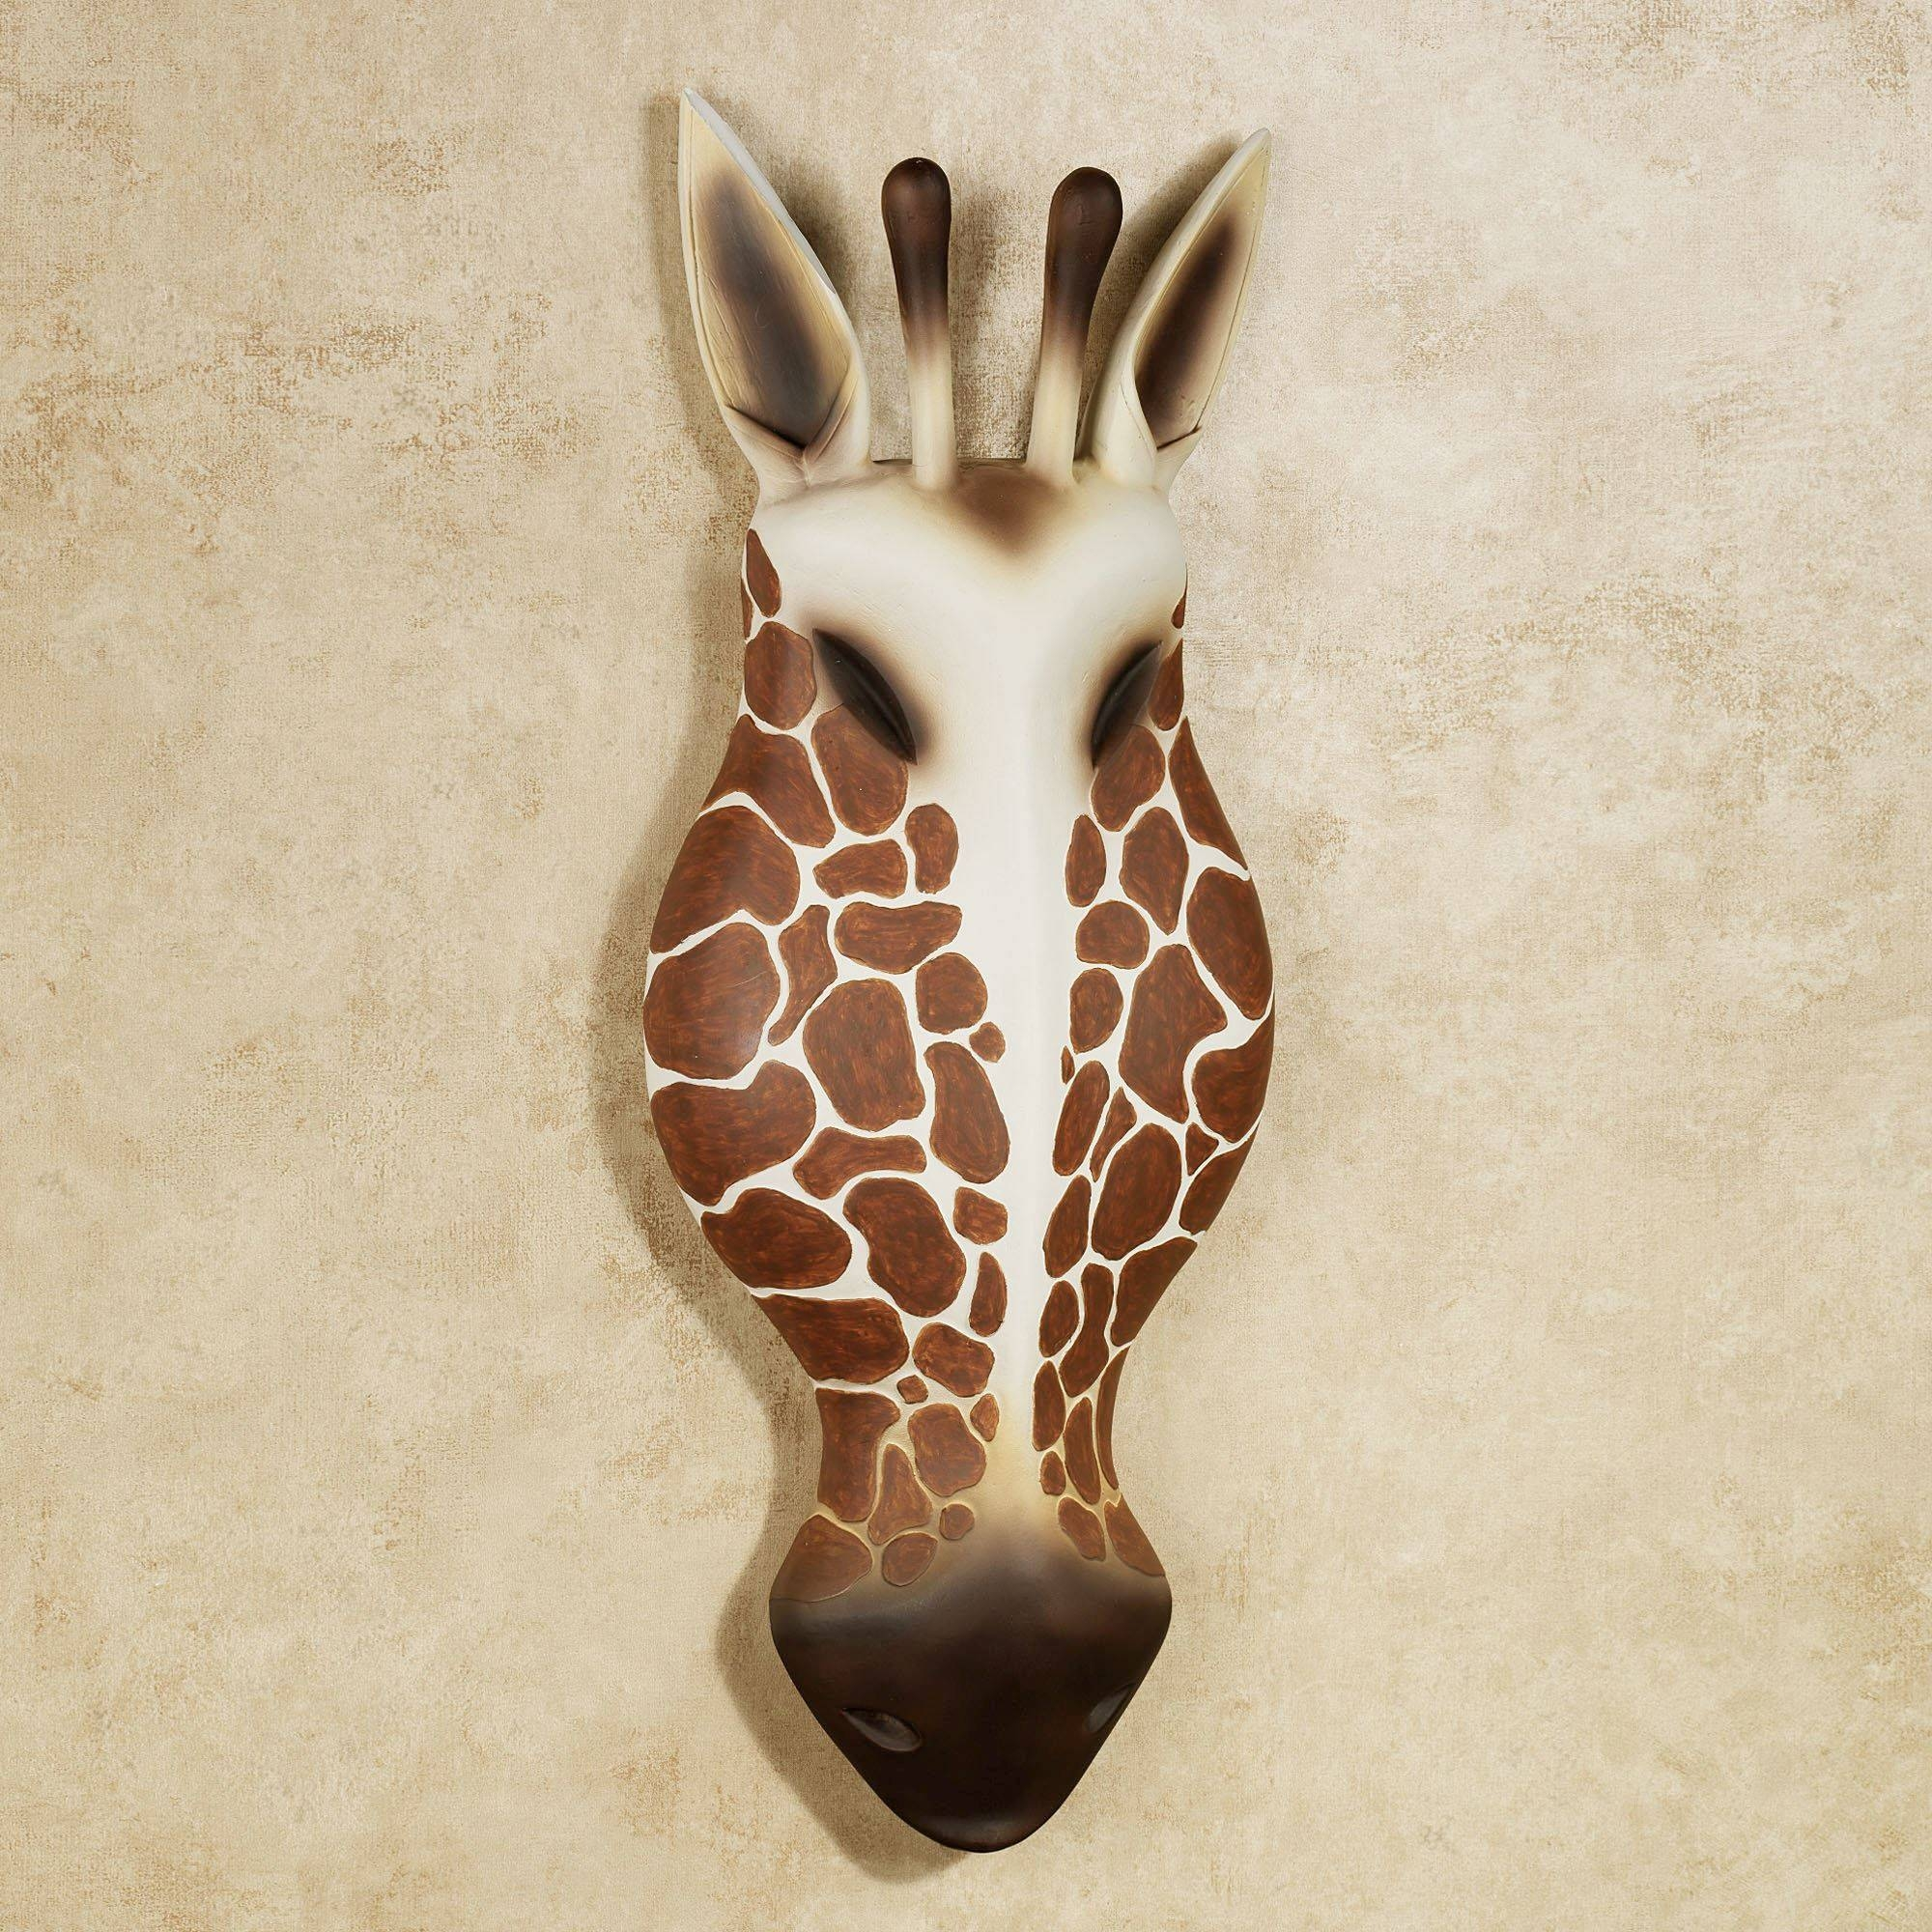 Resin Giraffe Head Wall Art Intended For Latest Giraffe Metal Wall Art (View 4 of 20)